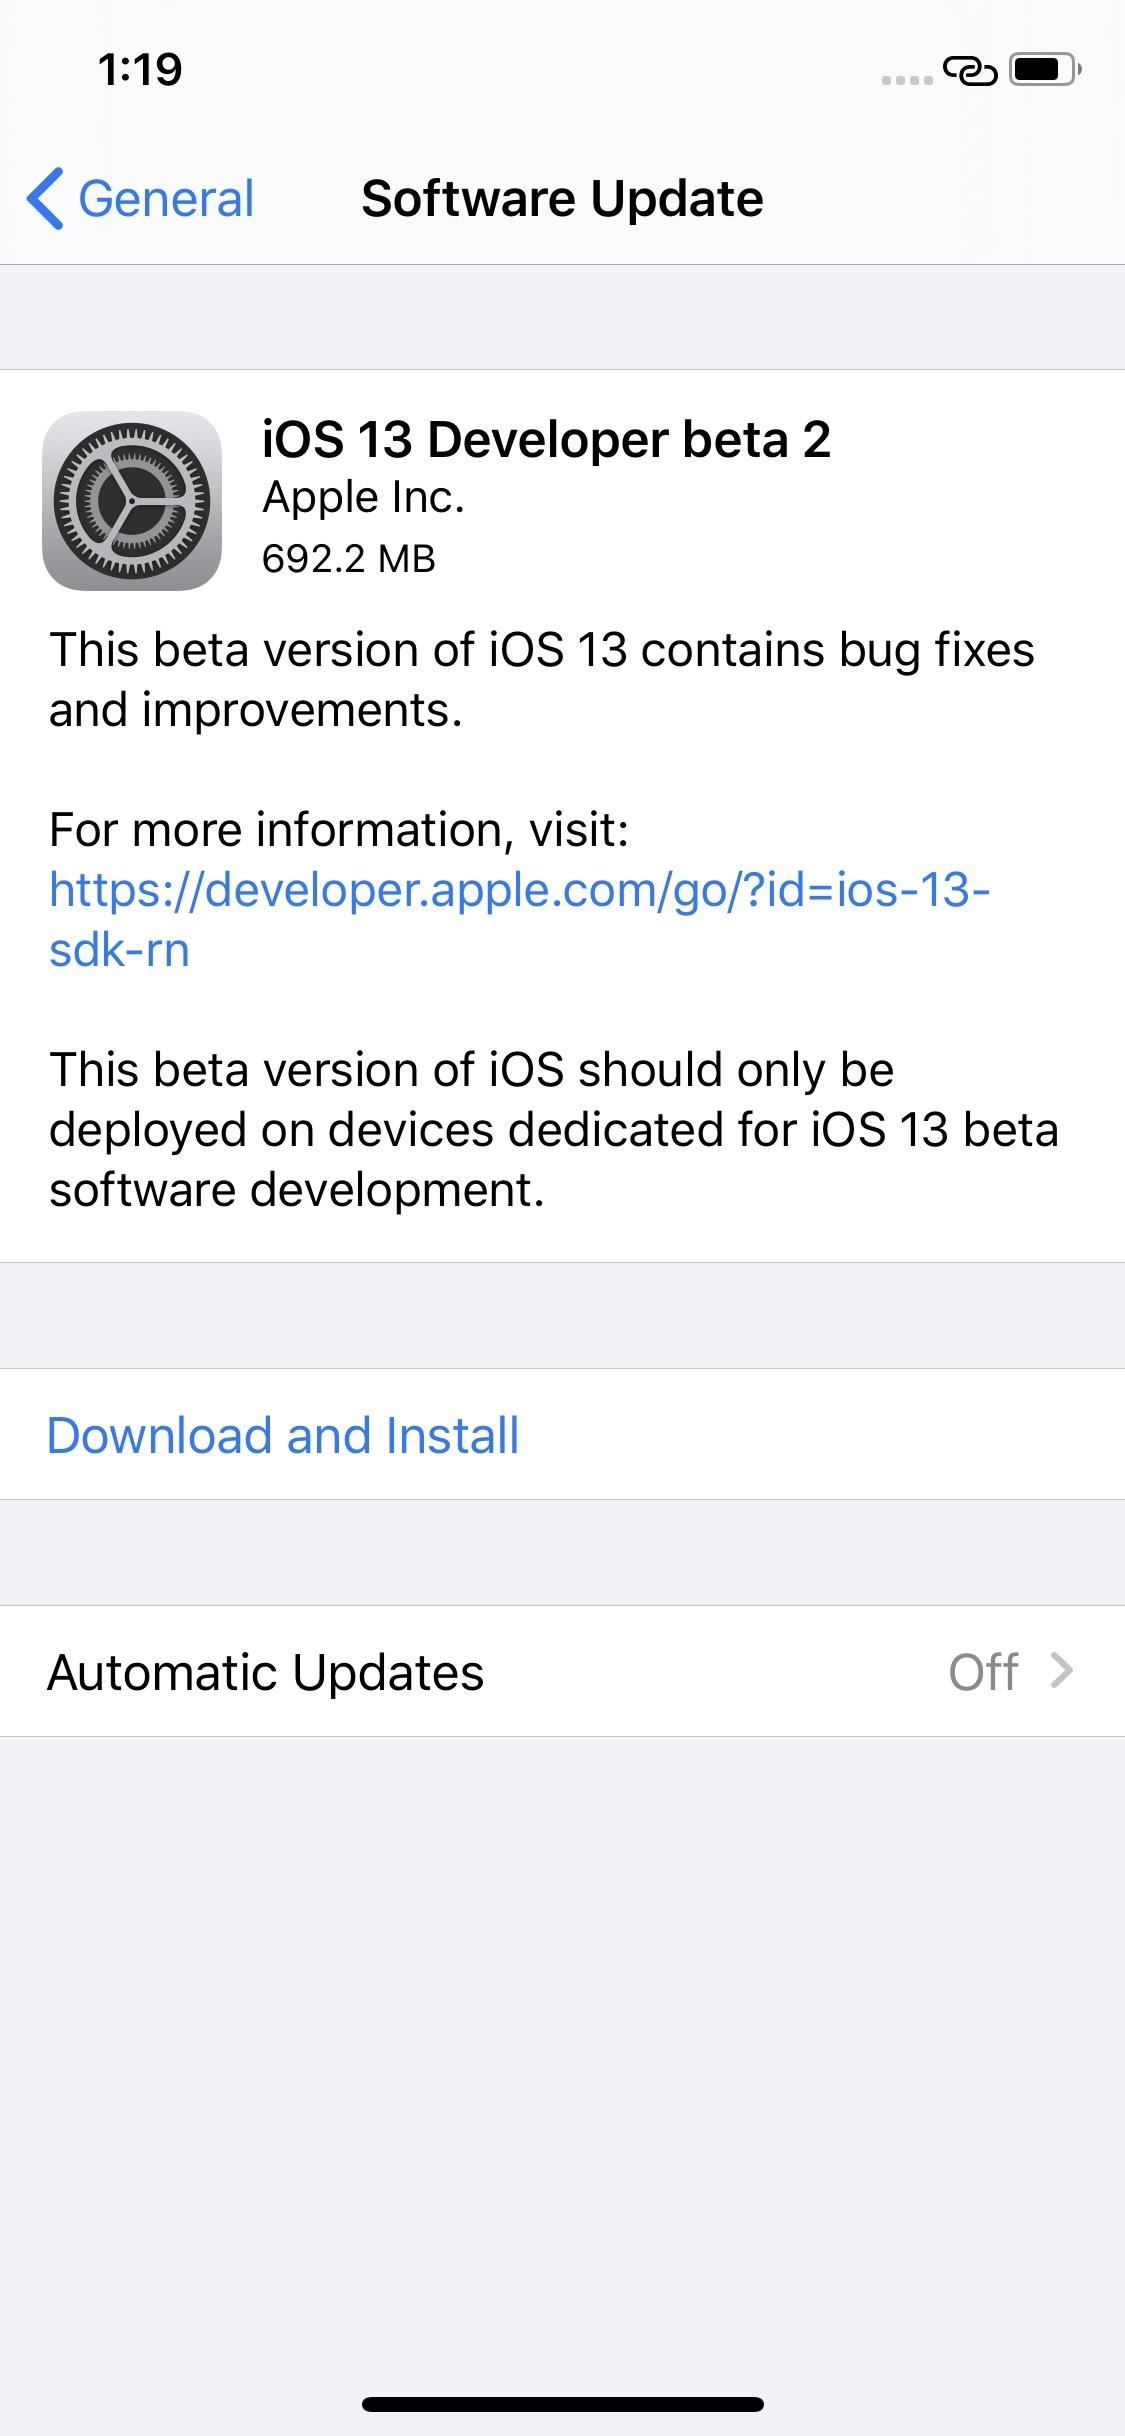 Apple releases iOS 13 Beta 2 for software developers.